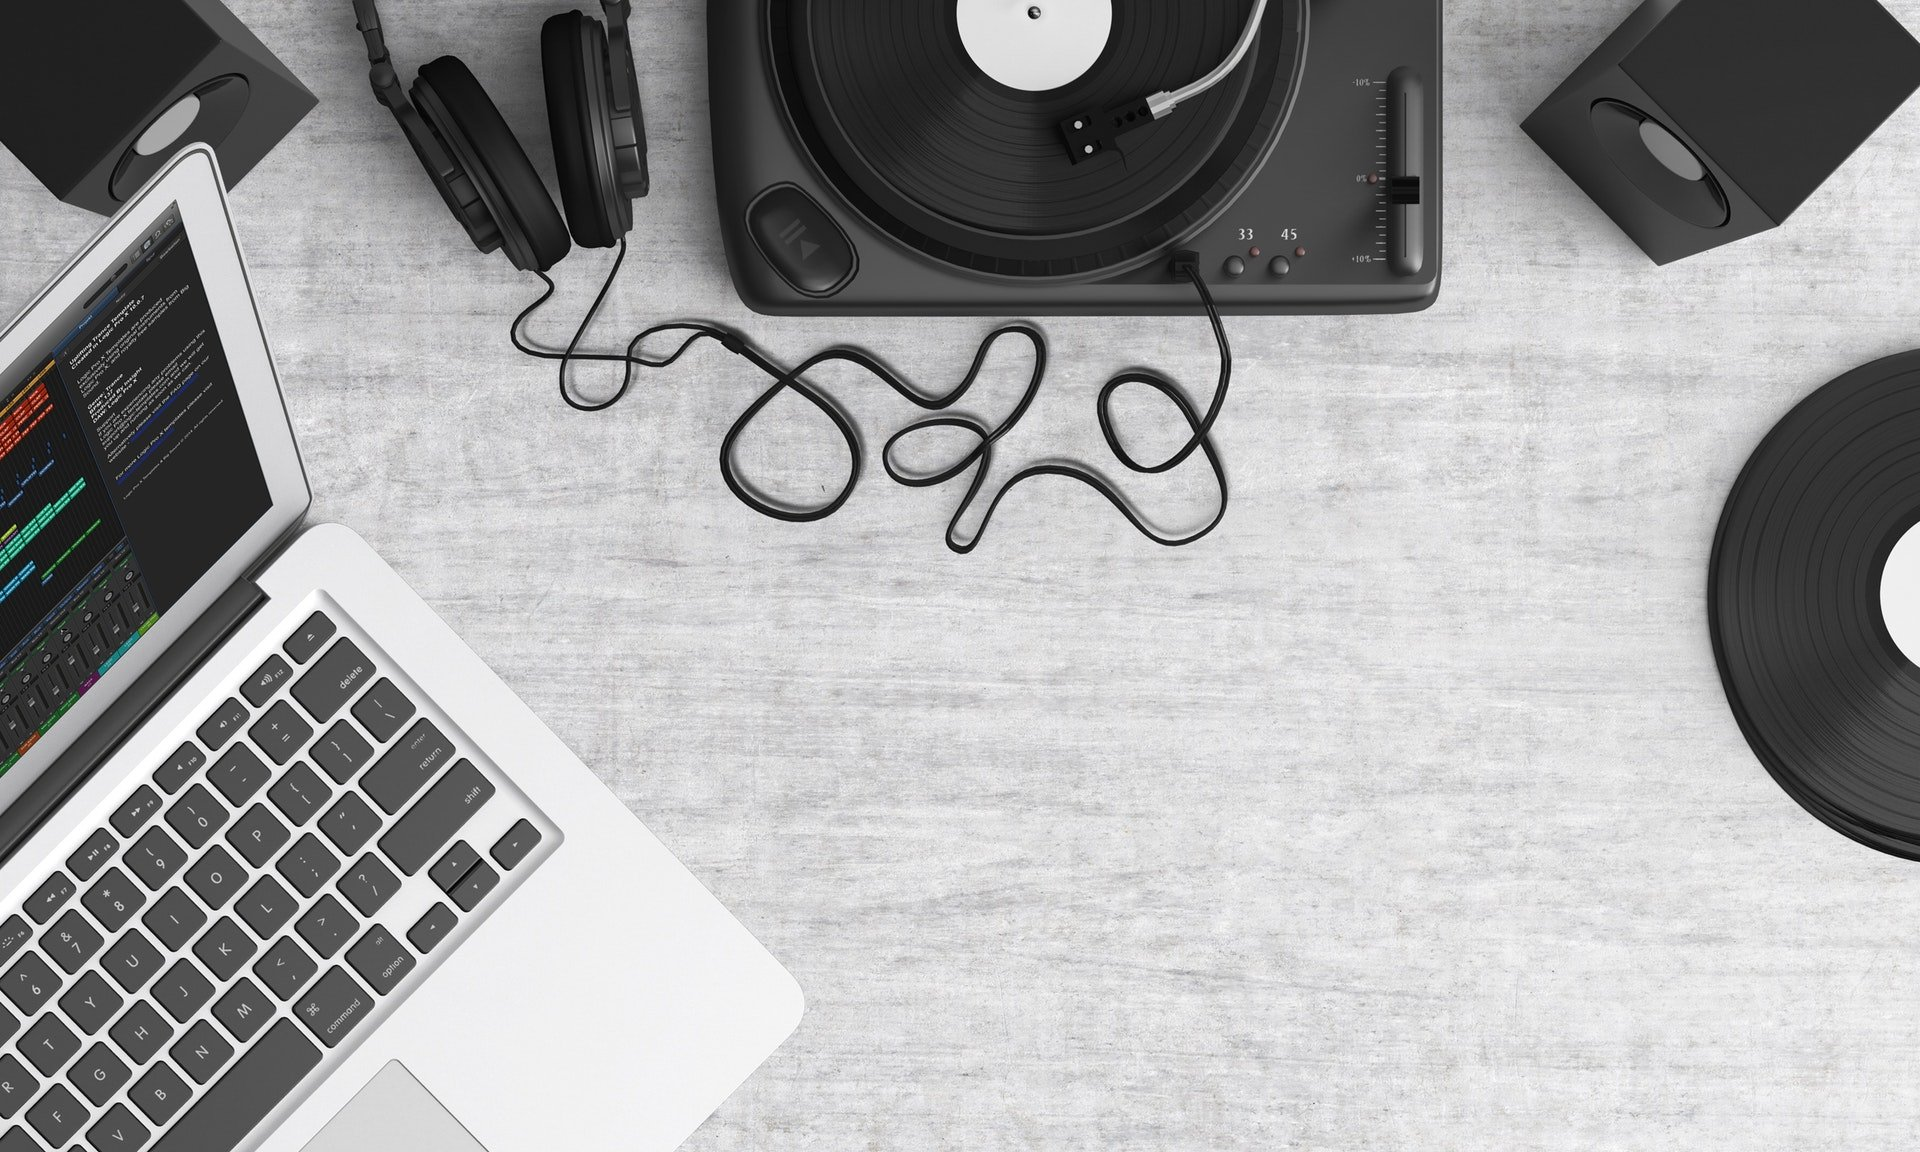 Coding and music